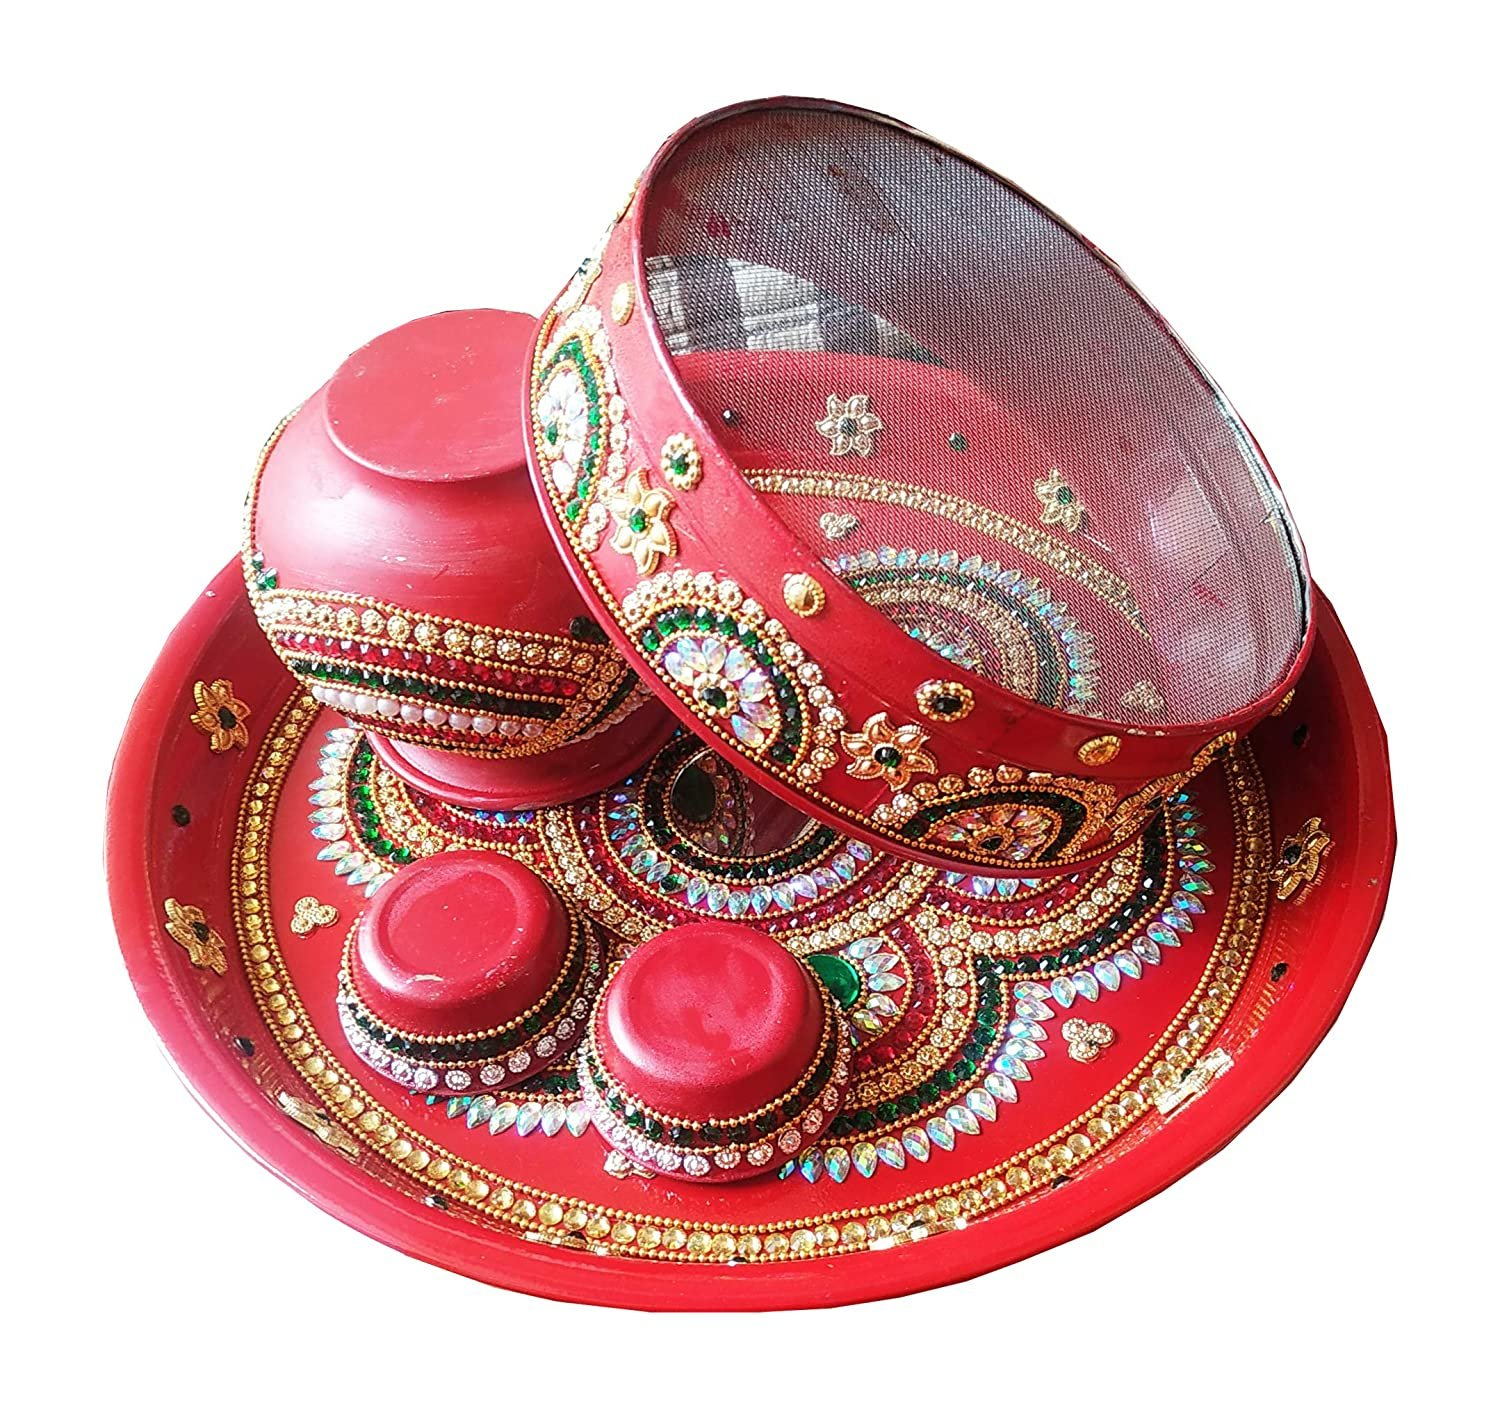 Enriched Colorful Om Pooja Thali Set For Karwachauth Festival